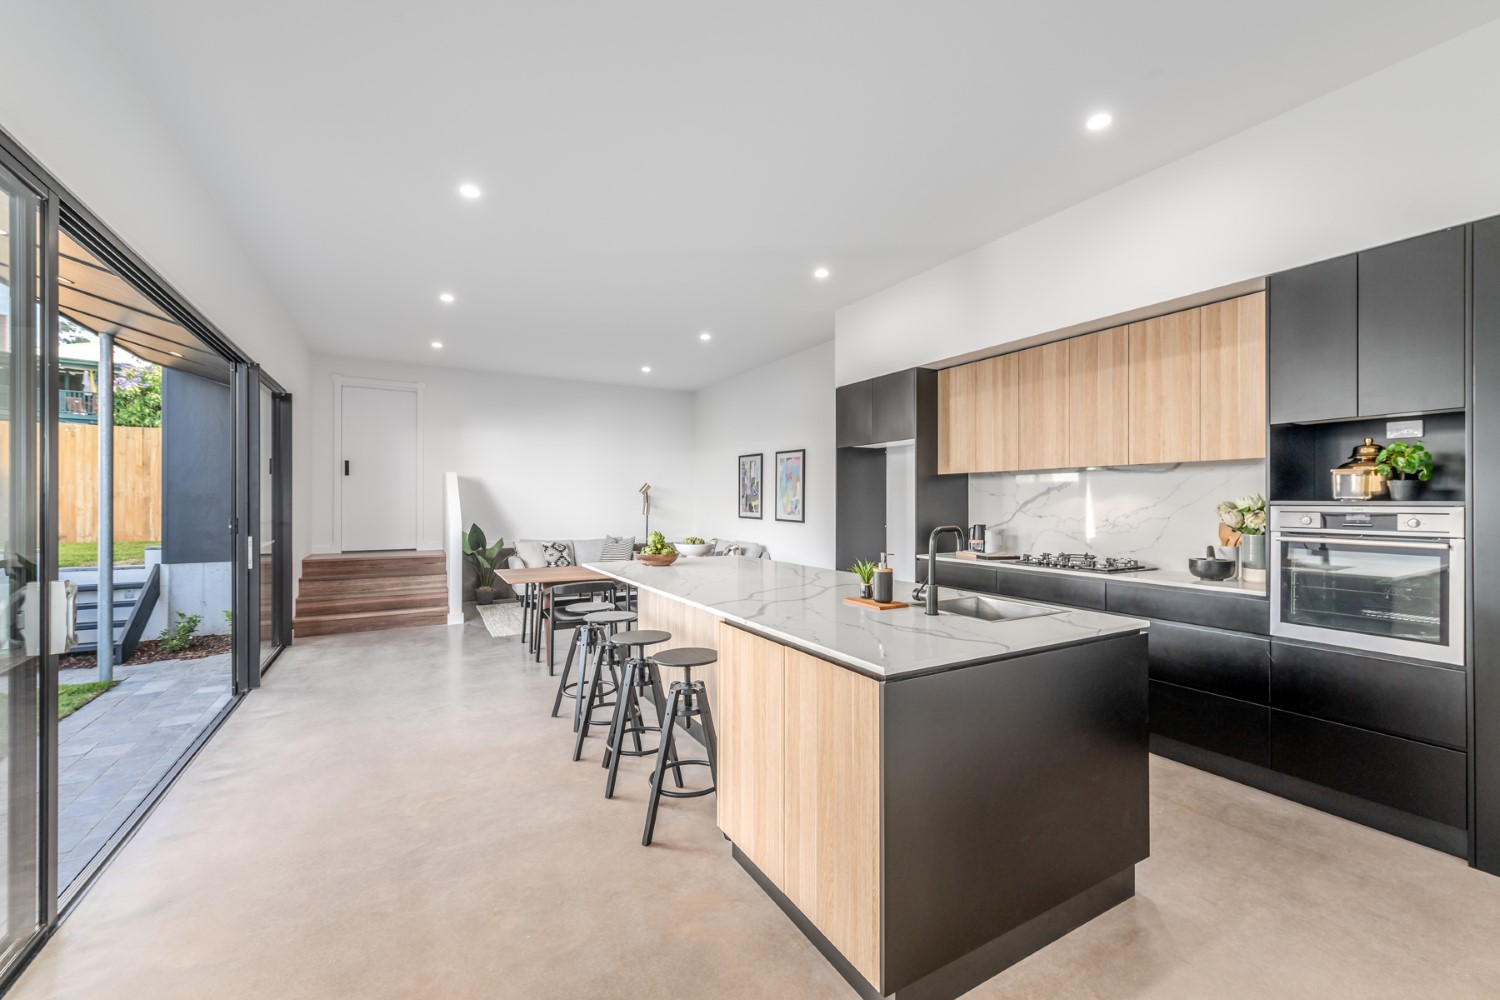 Renovated Family Home | New Lambton - https://www.peonyandsilk.com.au/wp-content/uploads/2019/02/Peony-and-Silk-Renovated-Family-Home-New-Lambton-18.jpg